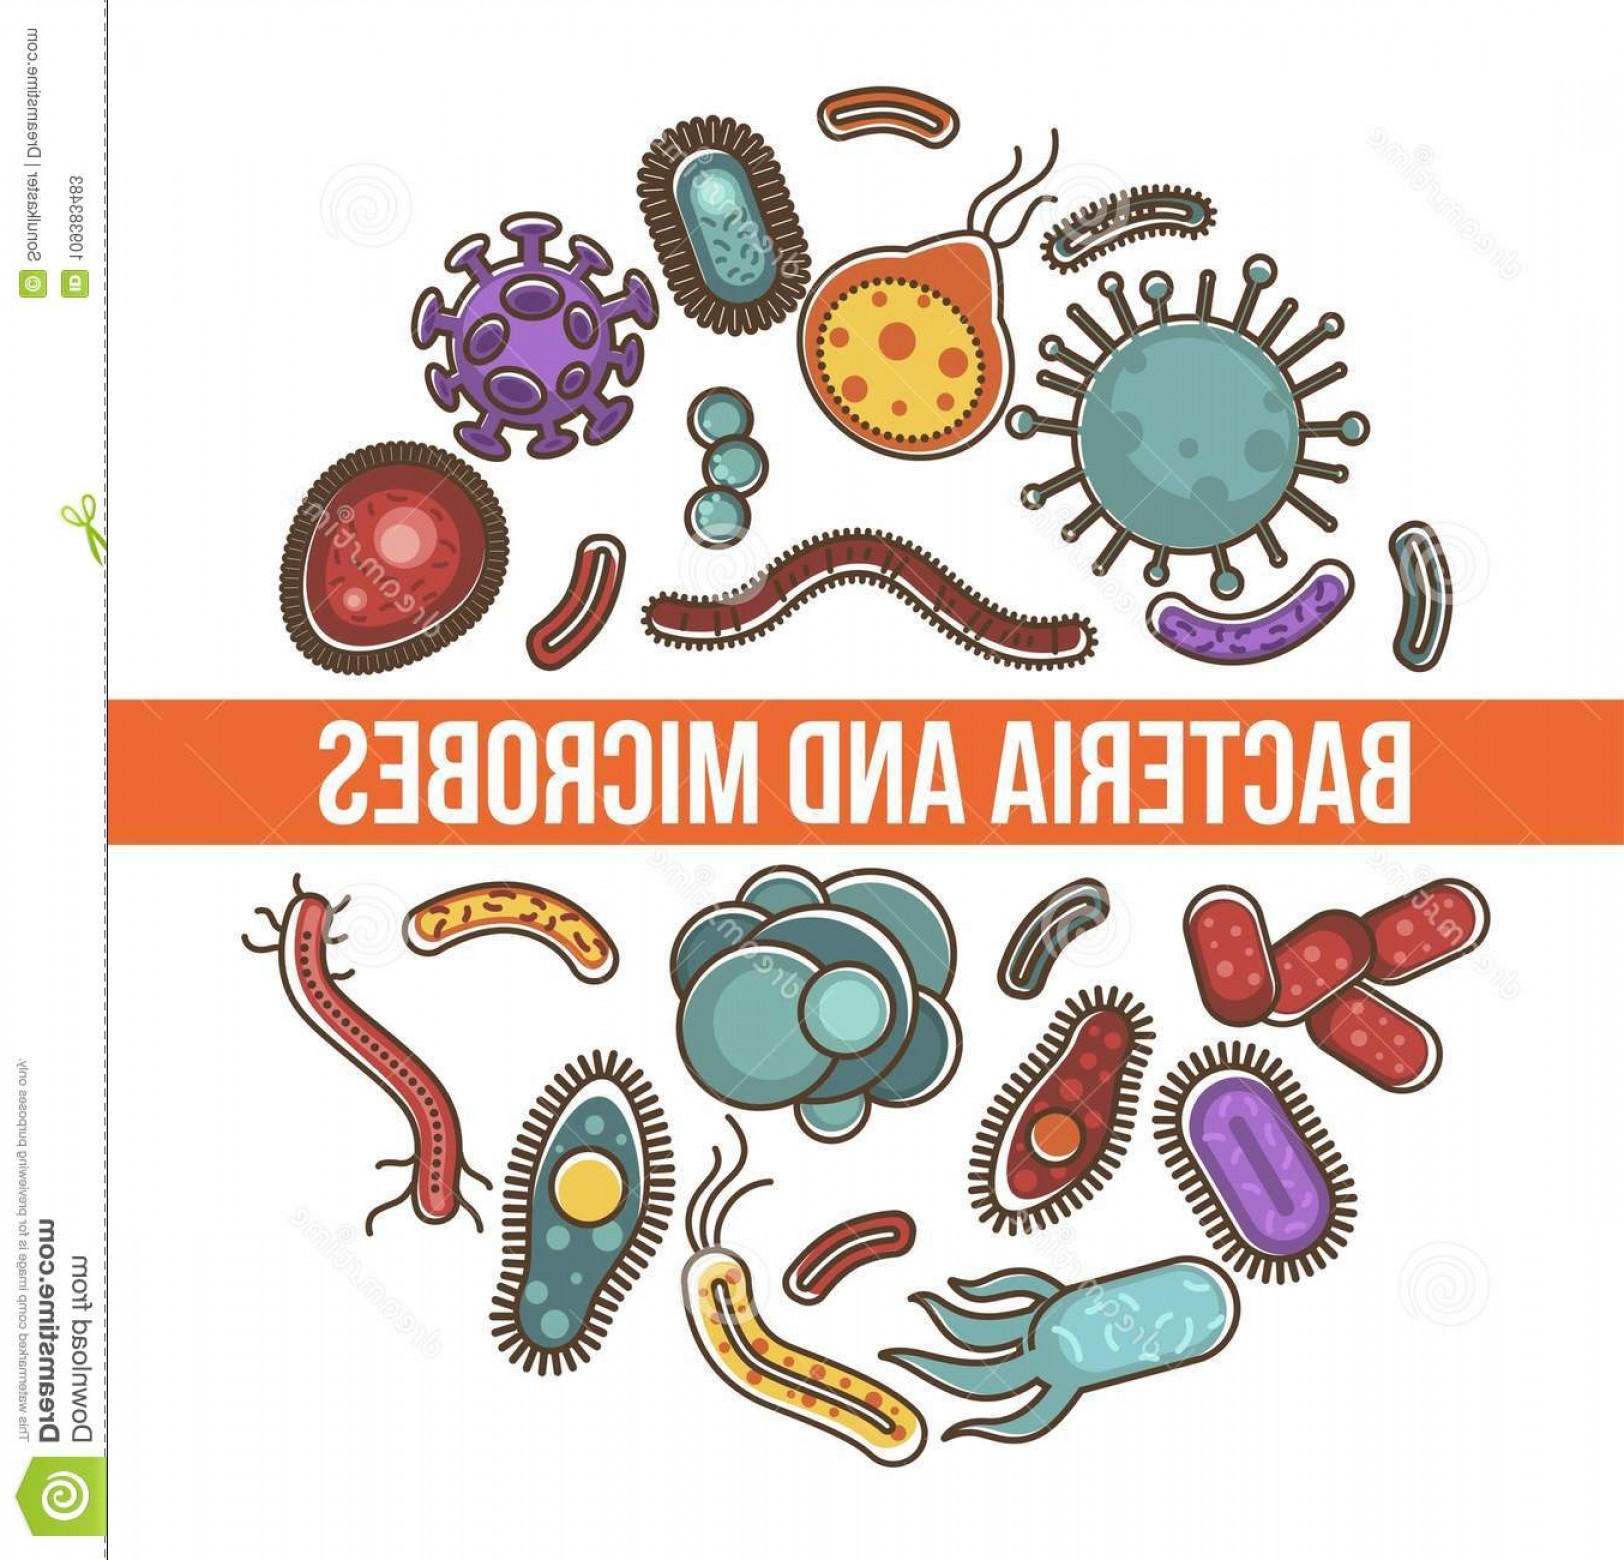 Vector Organisms On A Person: Bacteria Microbes Science Poster Biological Organisms Simplest Micro Bodies Short Antennas Various Shapes Circle Image